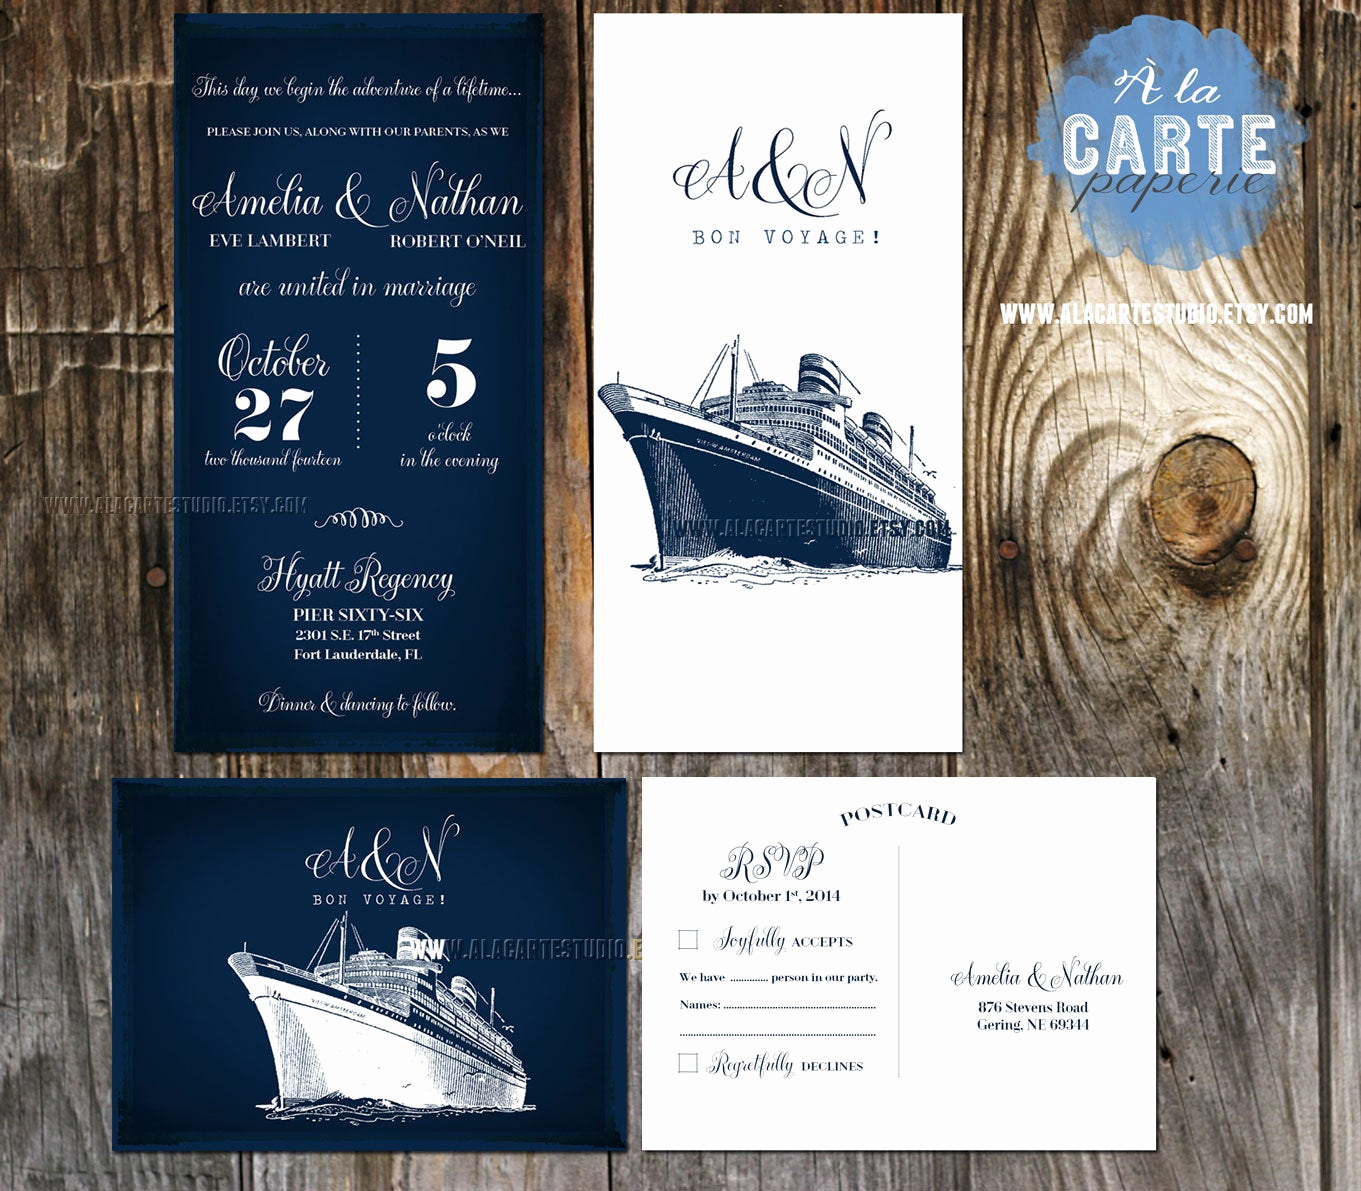 Cruise Ship Wedding Invitation Inspirational Chandeliers & Pendant Lights